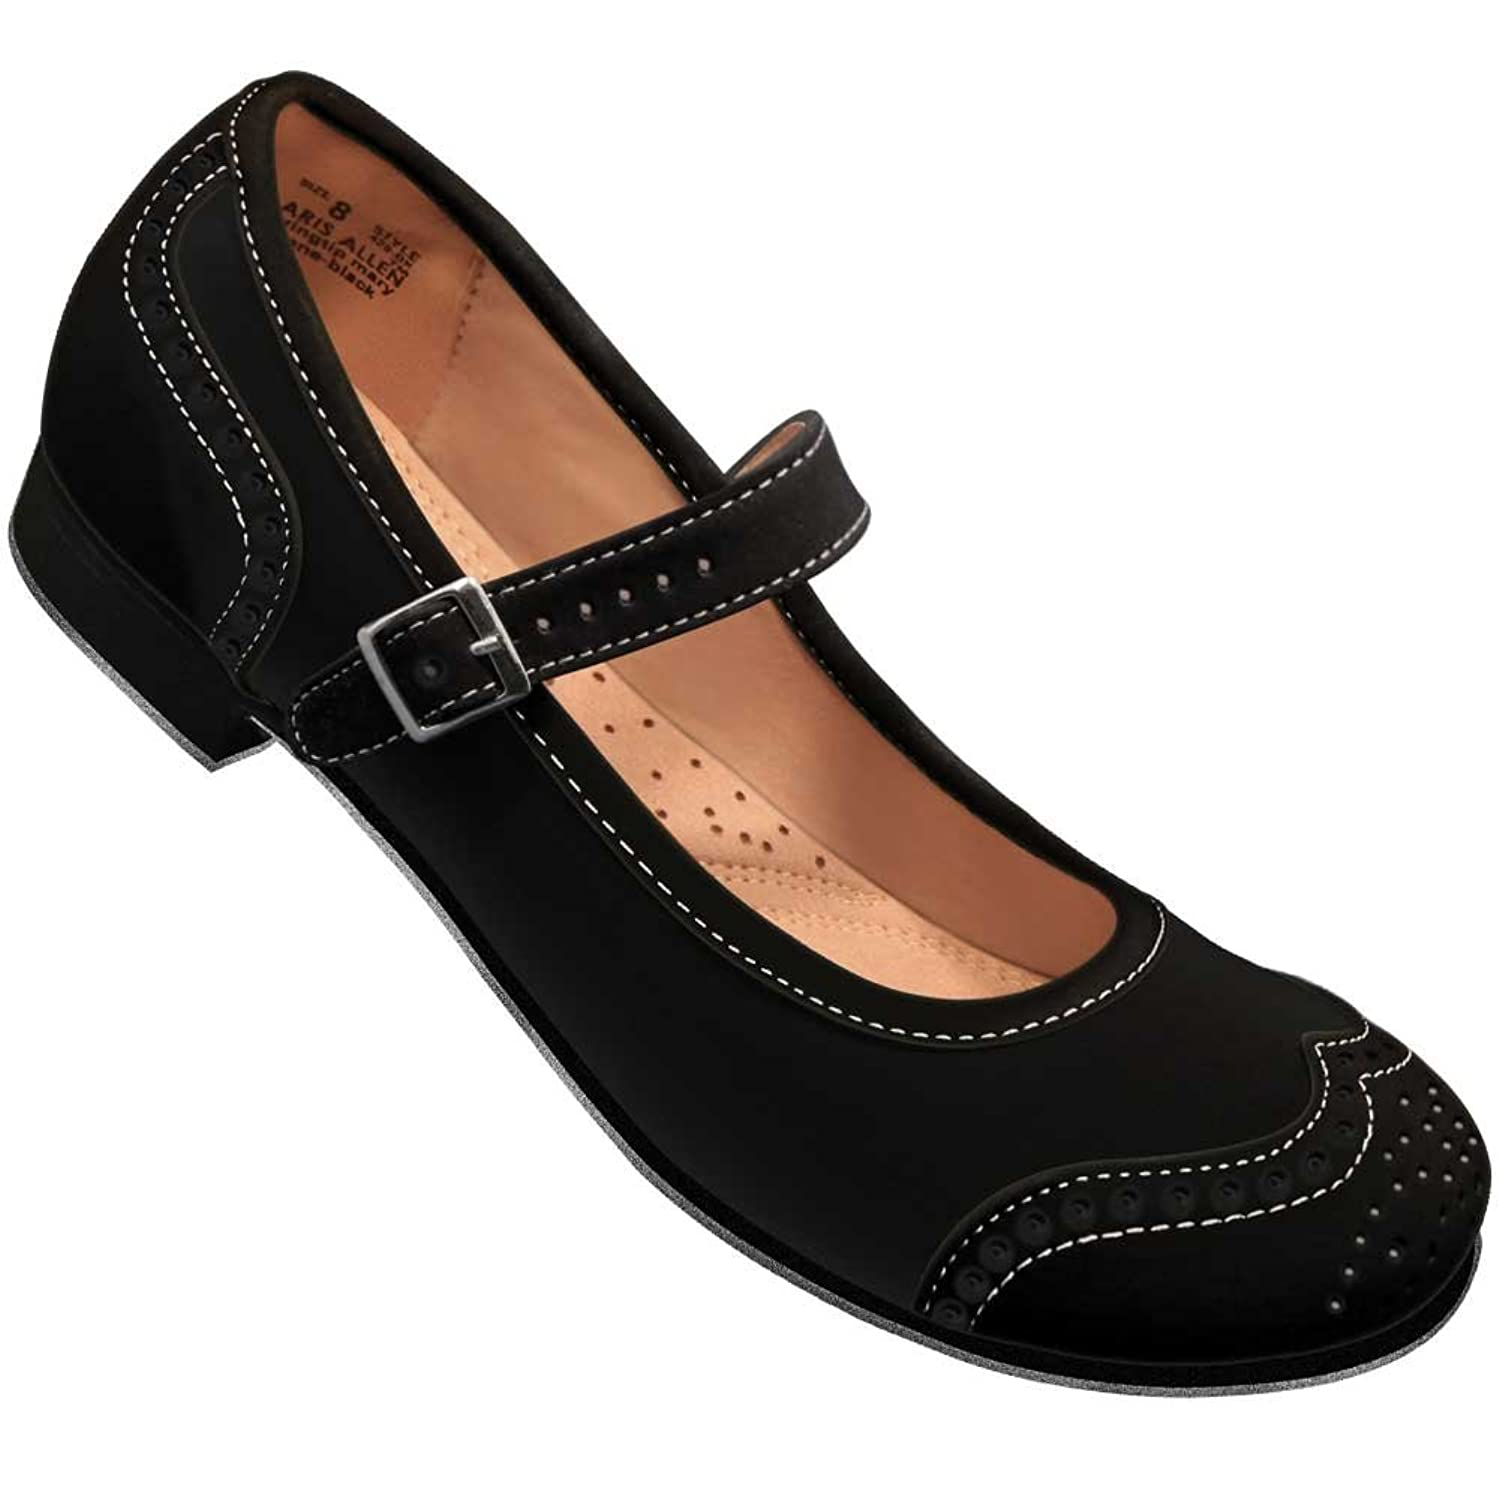 What Did Women Wear in the 1950s? Aris Allen Black Snub Toe Mary Jane Wingtips $48.95 AT vintagedancer.com